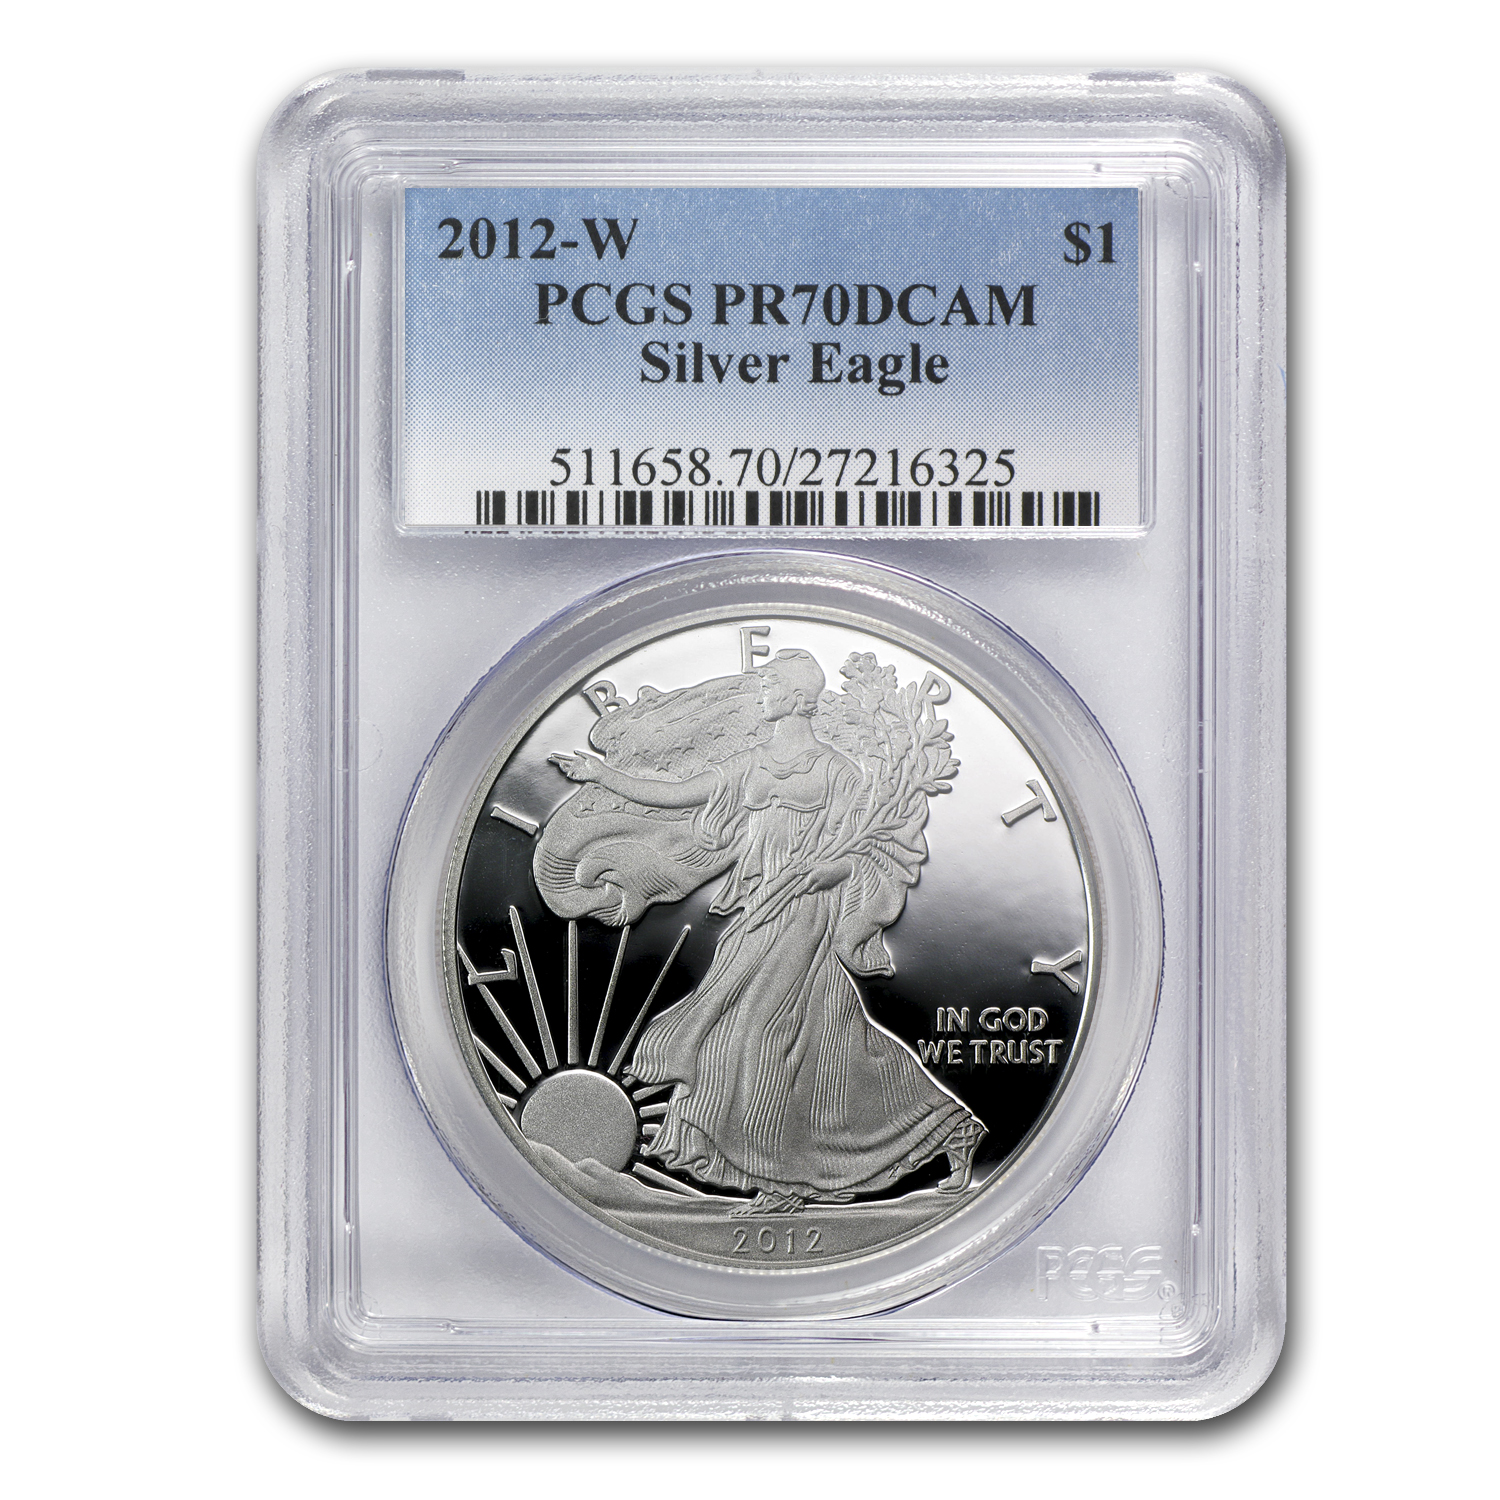 2012-W Proof Silver American Eagle PR-70 PCGS